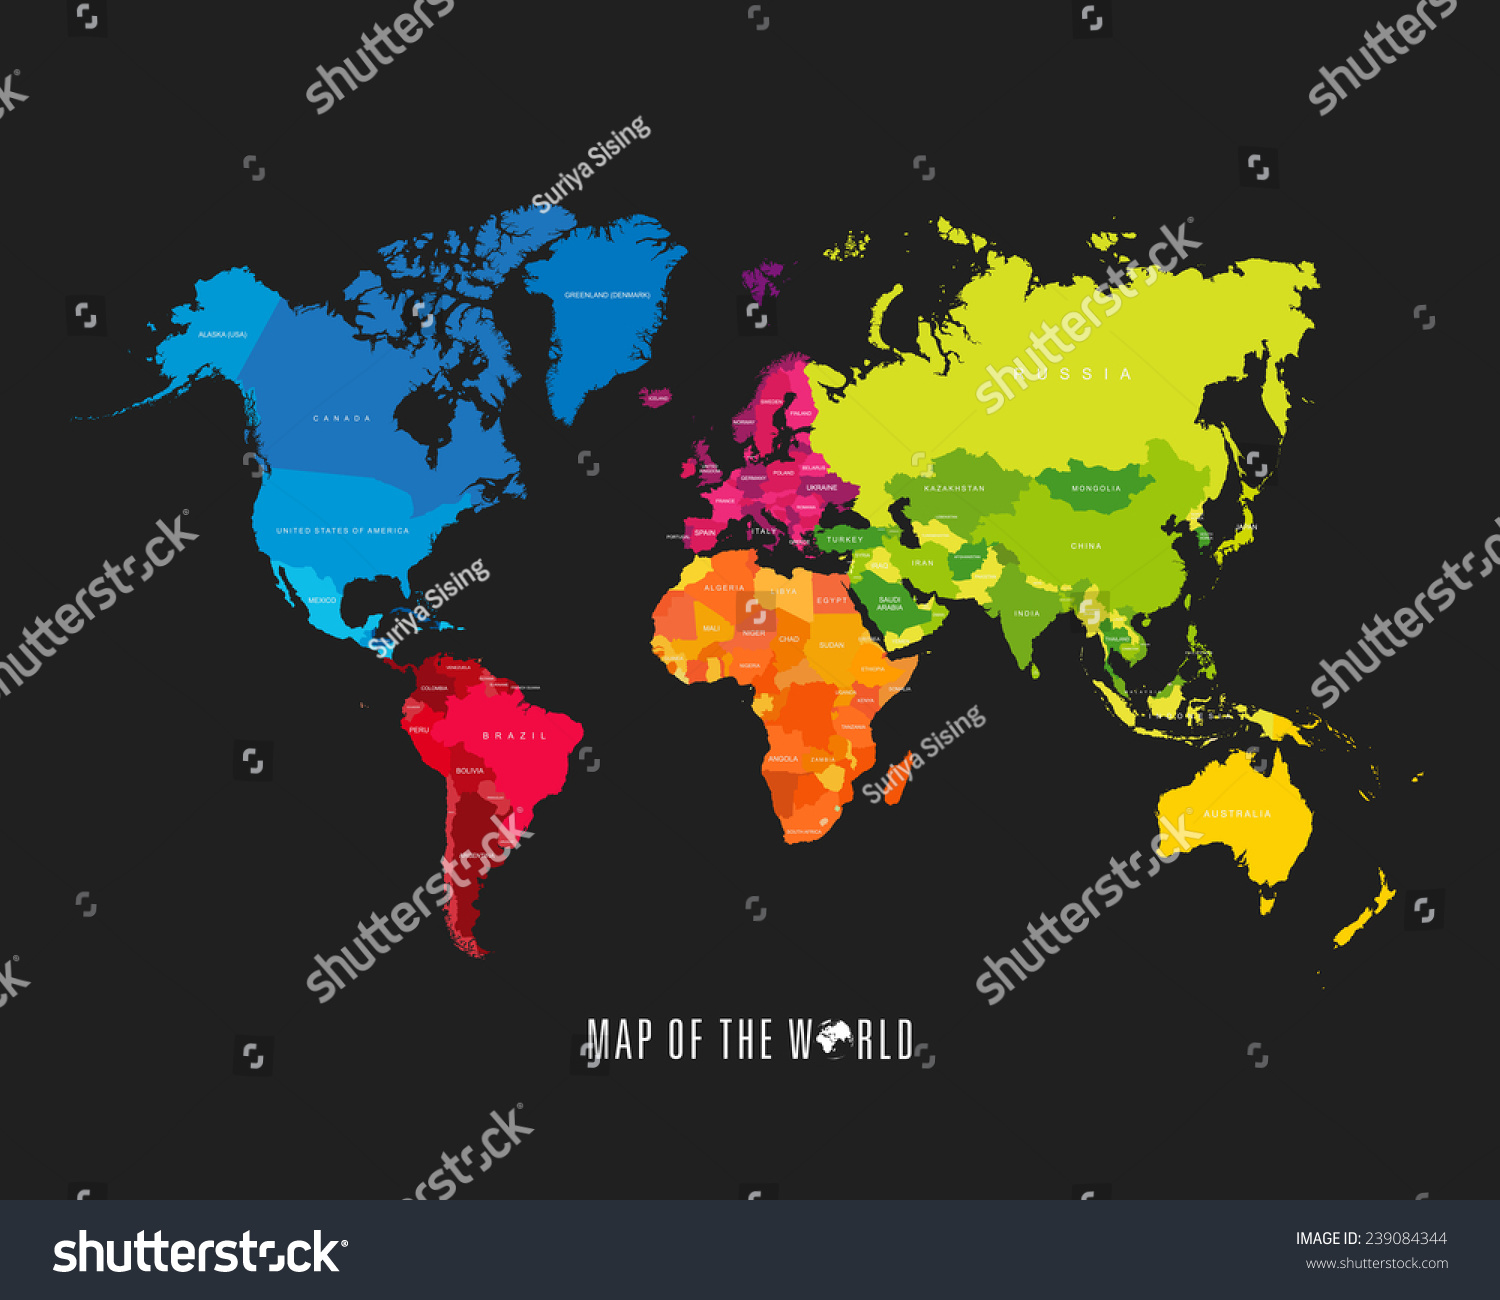 World Map Different Colored Continents Illustration Stock ...